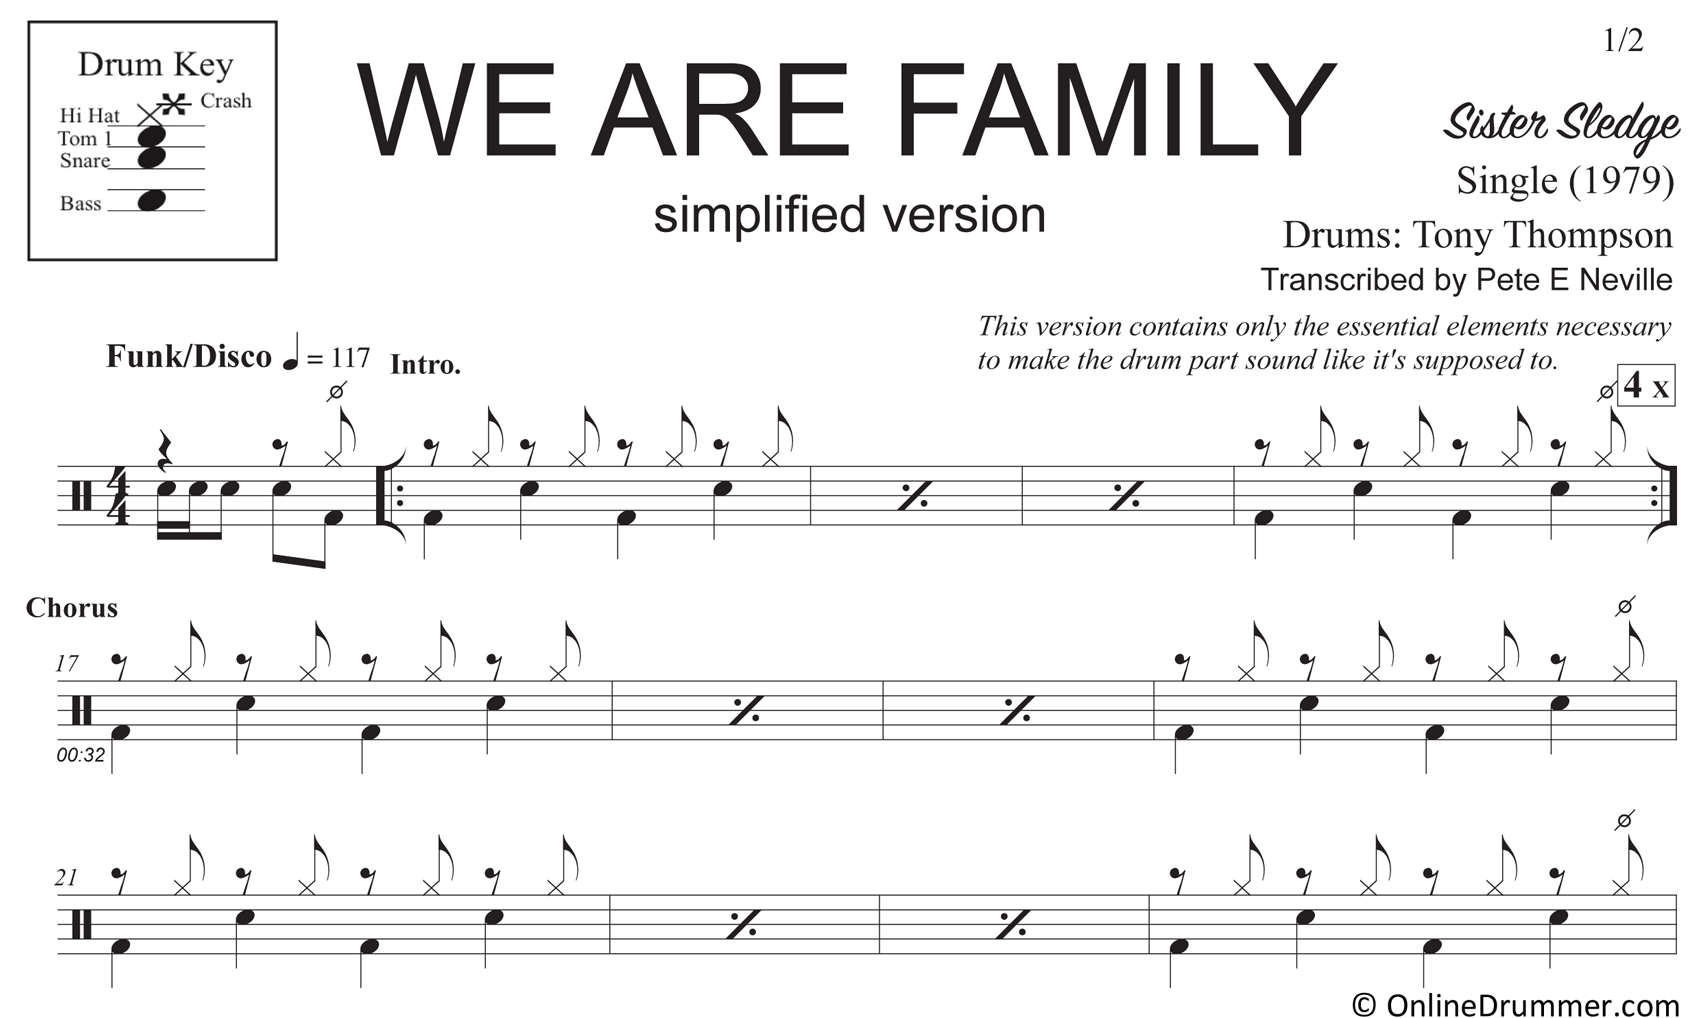 We Are Family - Simplified